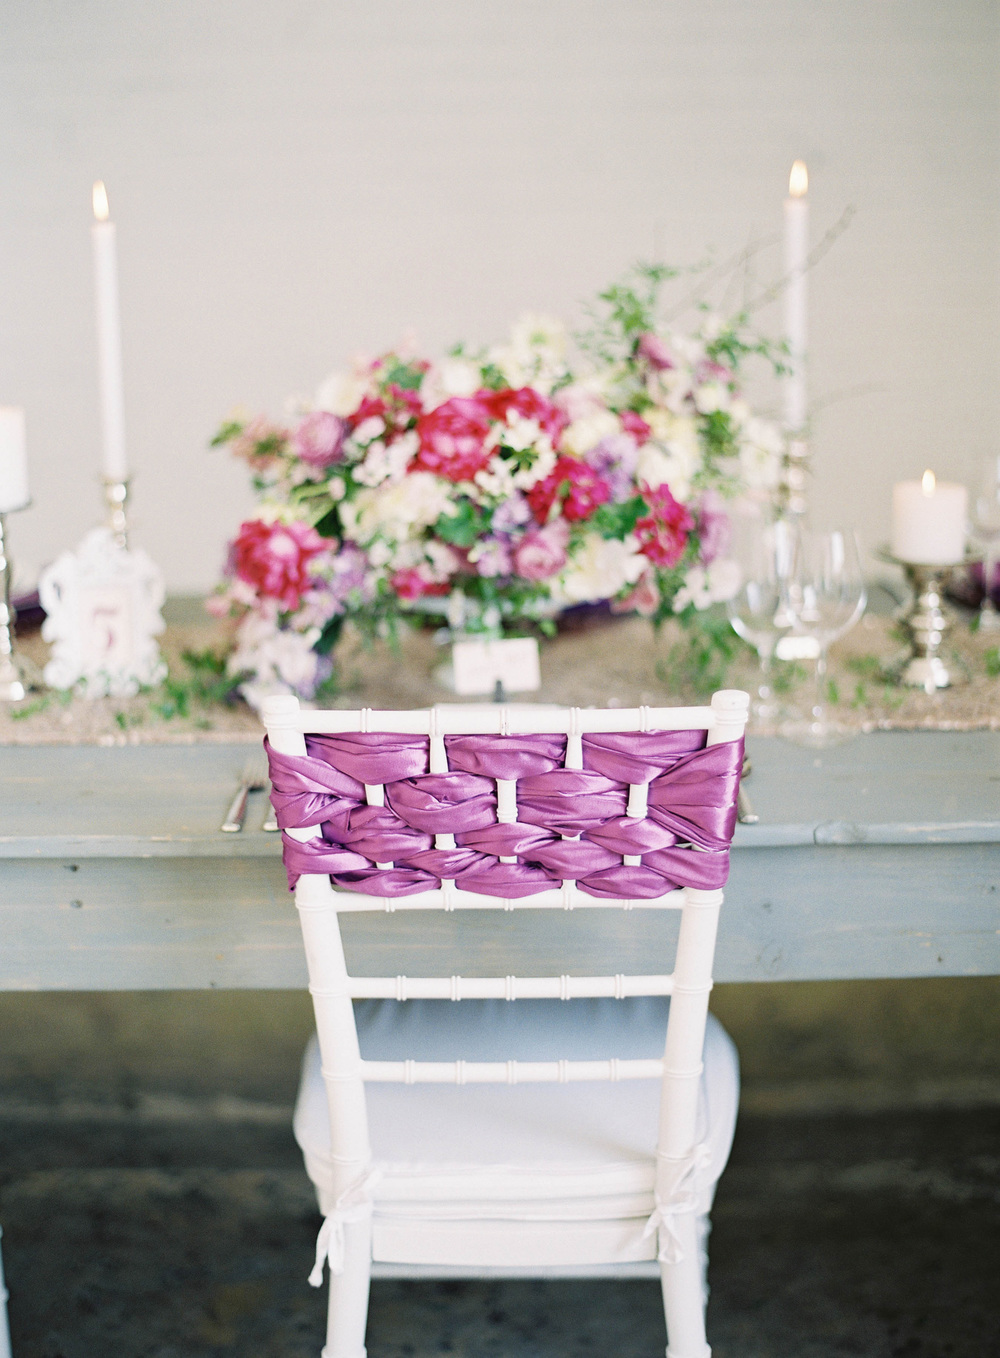 Valentine Orchid Wedding Inspiration | Jacque Lynn Photography | Michelle Leo Events | Utah Wedding and Event Design and Planning